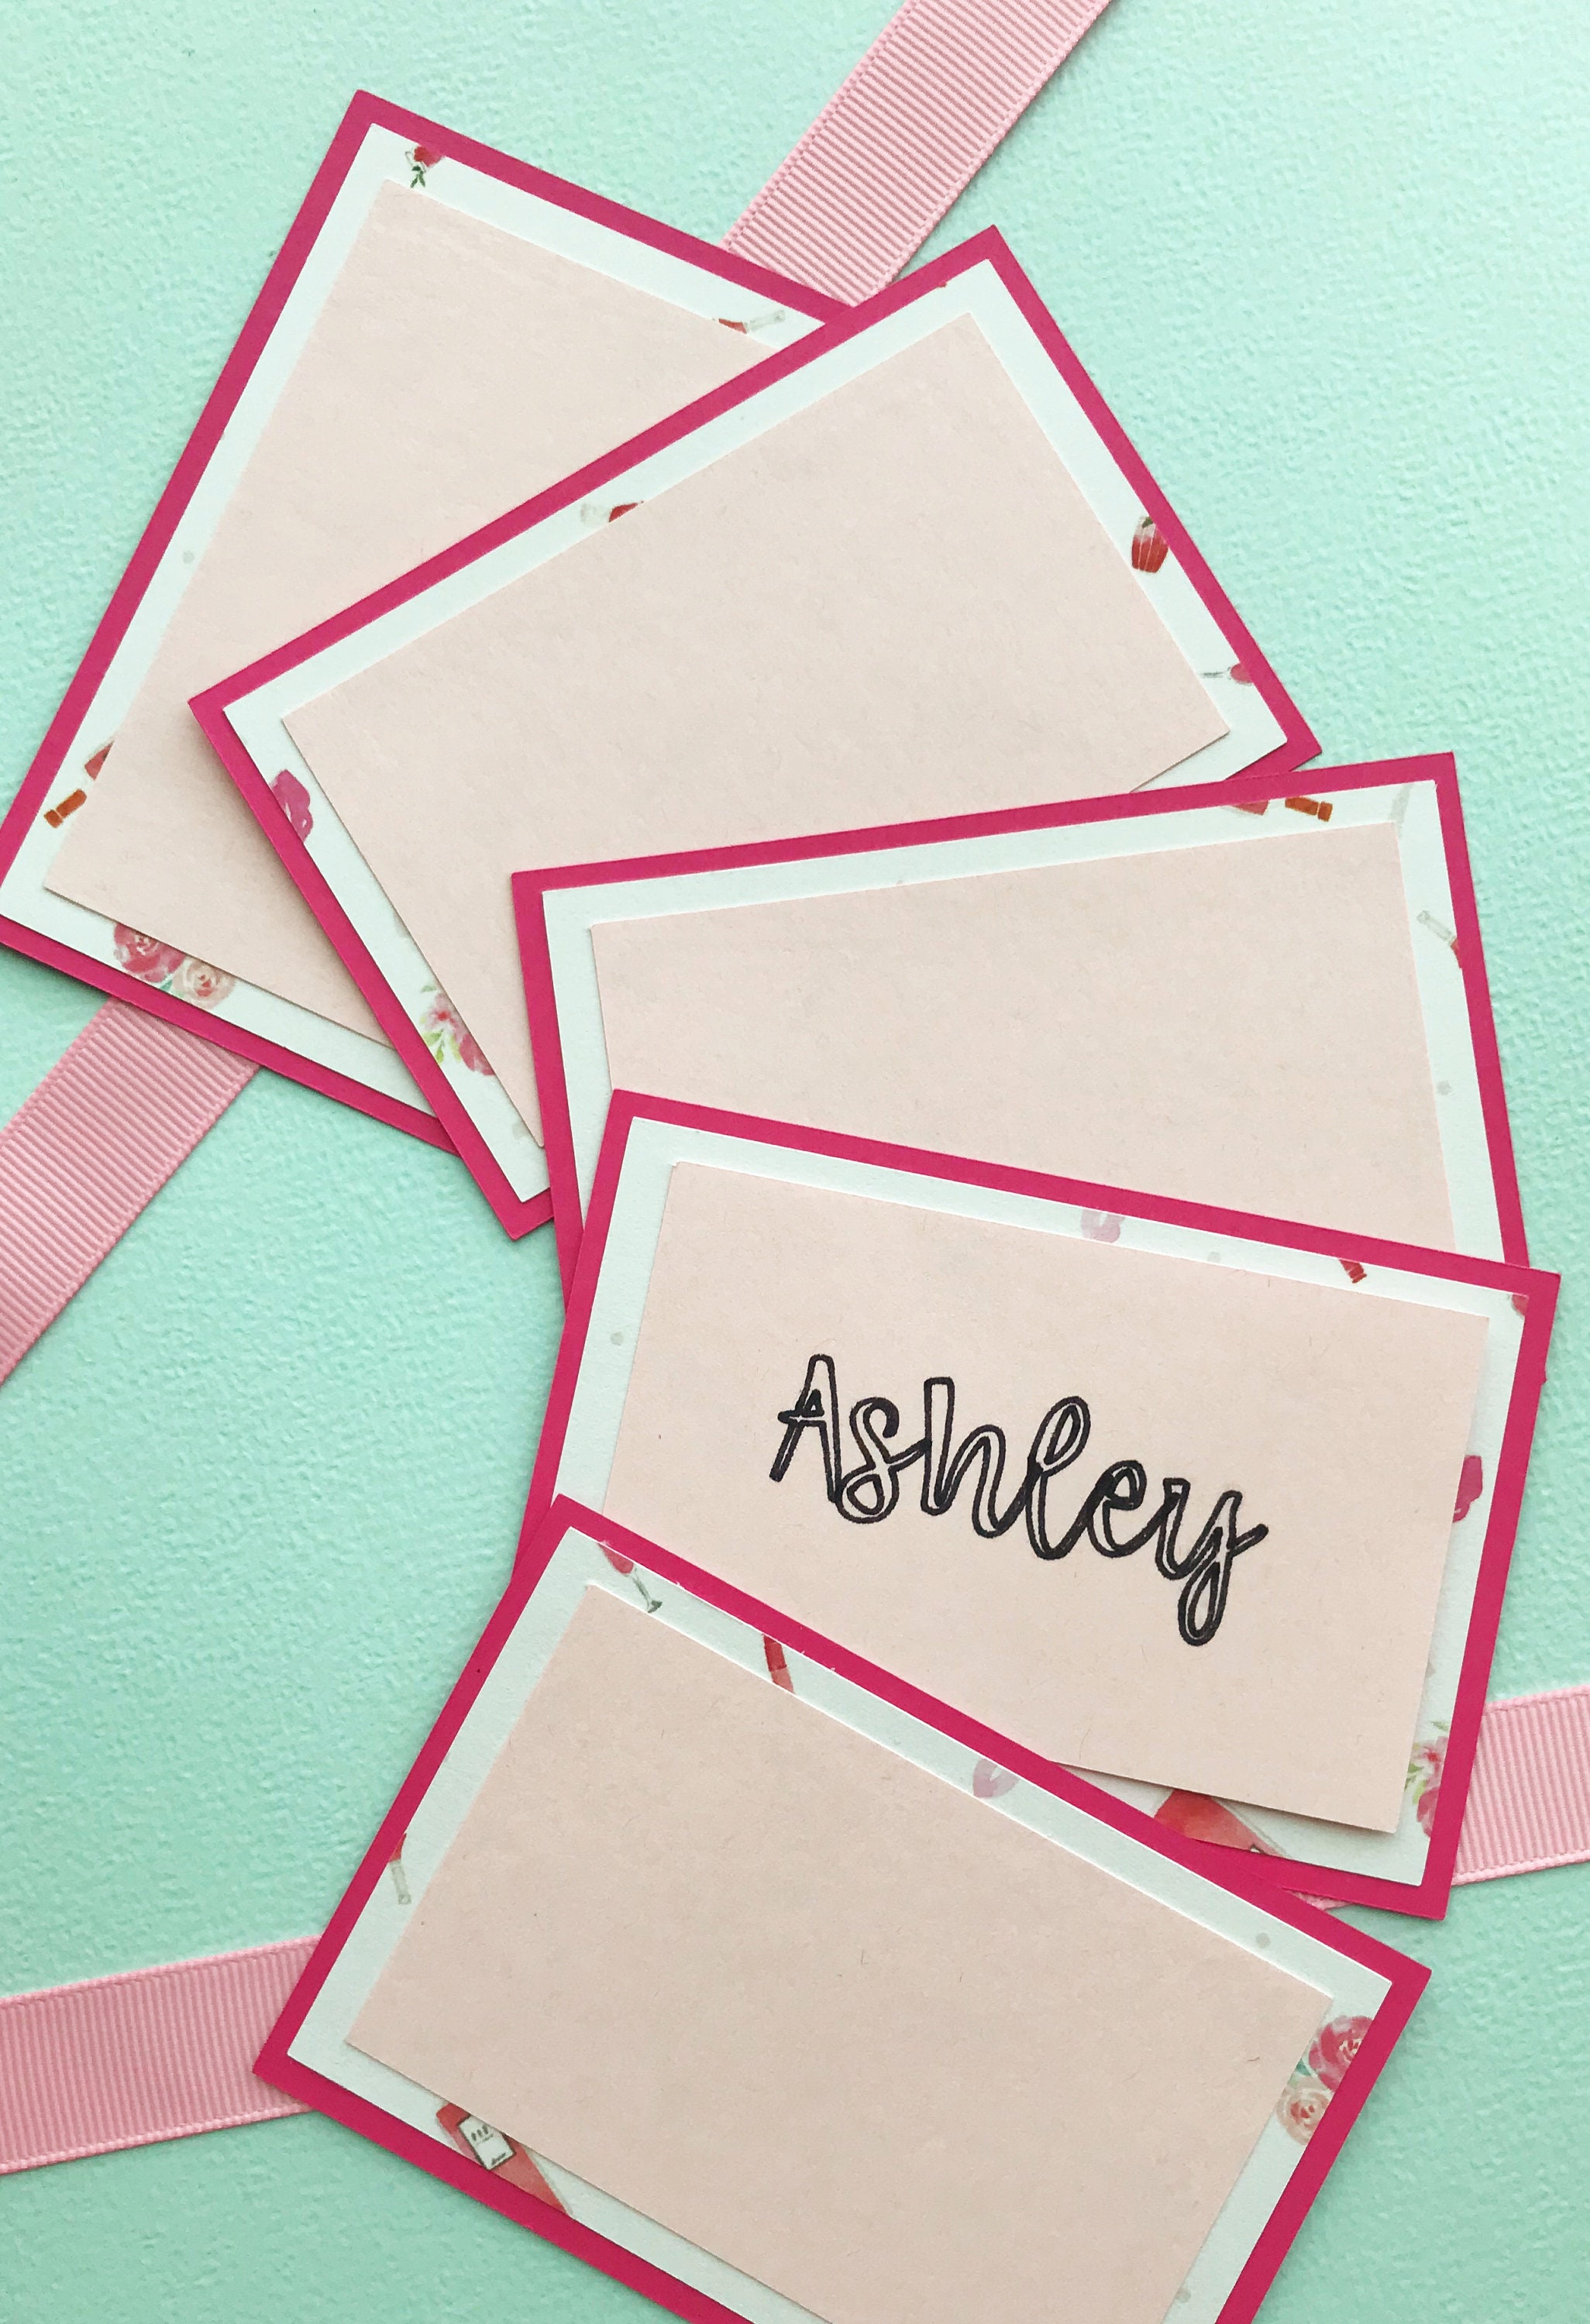 ros place cards pink and white party ros soire dinner party dcor wedding escort cards wine tasting food labels